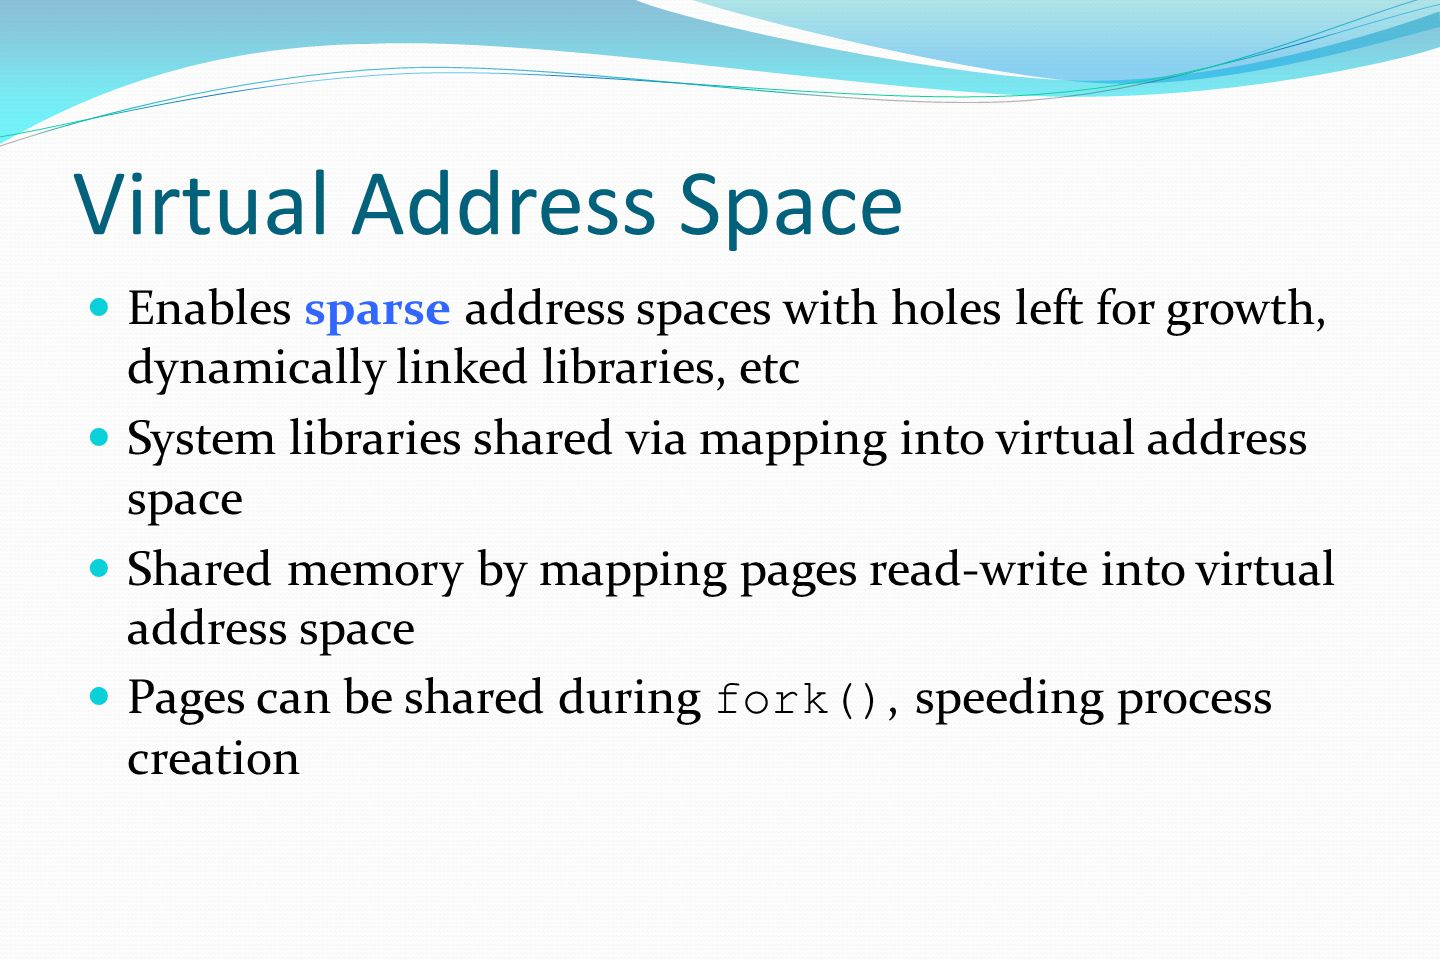 Virtual Address Space Enables sparse address spaces with holes left for growth, dynamically linked libraries, etc System libraries shared via mapping into virtual address space Shared memory by mapping pages read-write into virtual address space Pages can be shared during fork(), speeding process creation